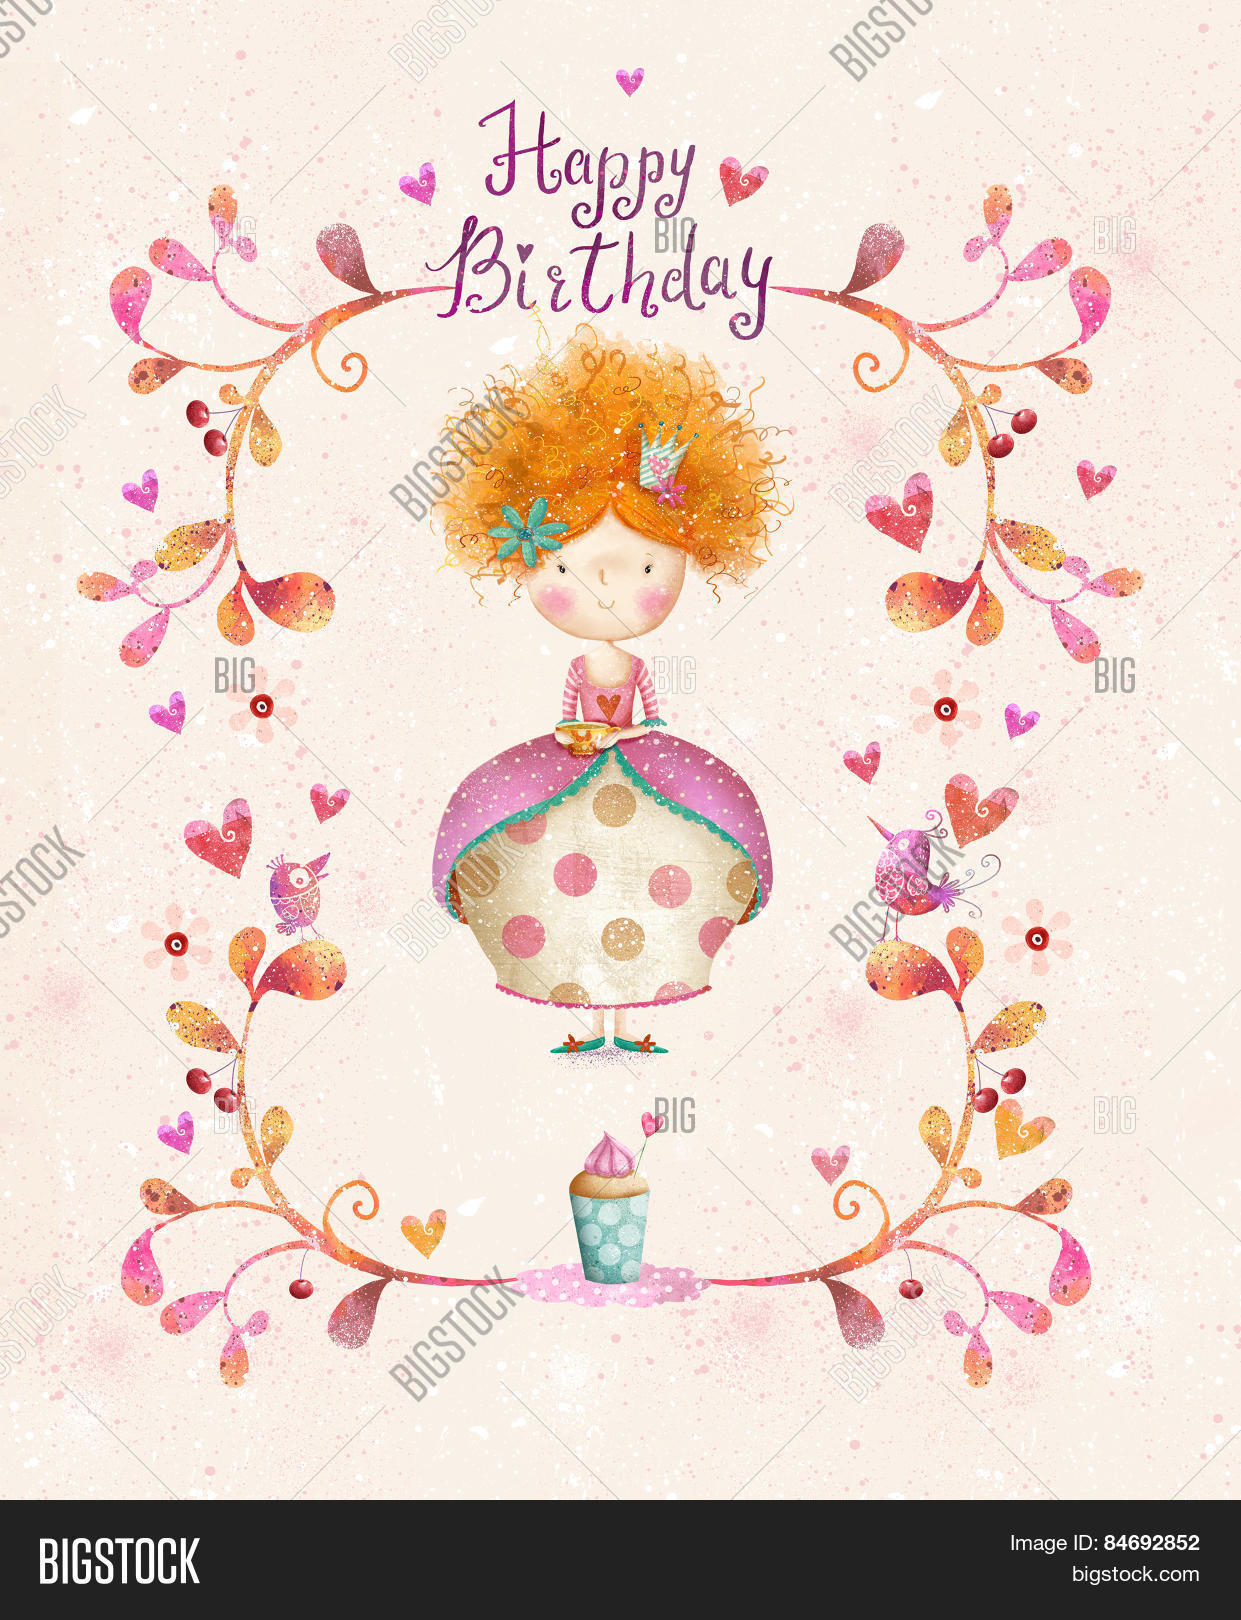 Happy Birthday Card In Cartoon Style Cute Small Princess With Cup Of Tea Flowers